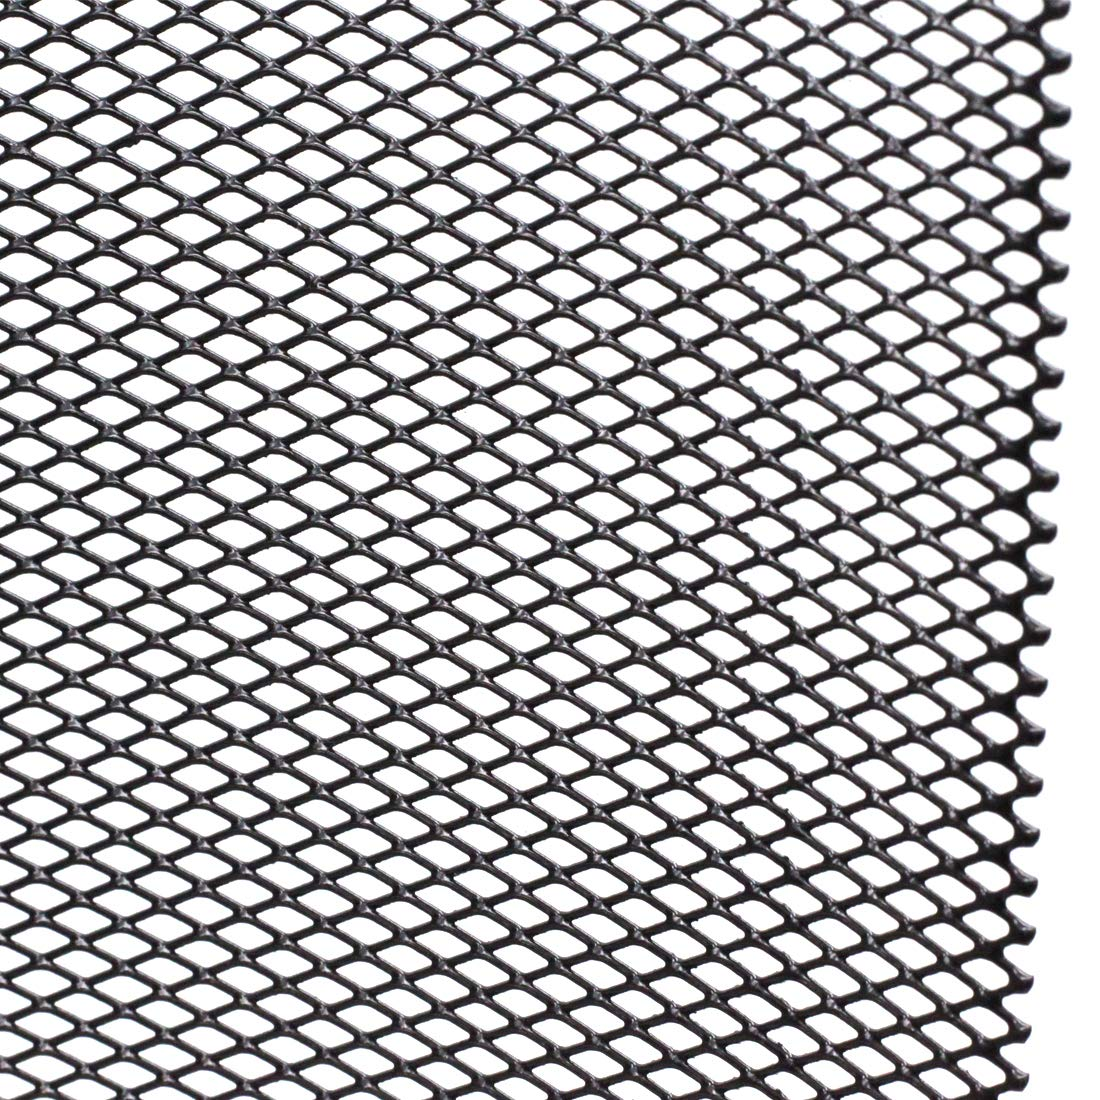 AUTOT 40x13 Car Grille Sheet 8x4mm Rhombic Type Silver